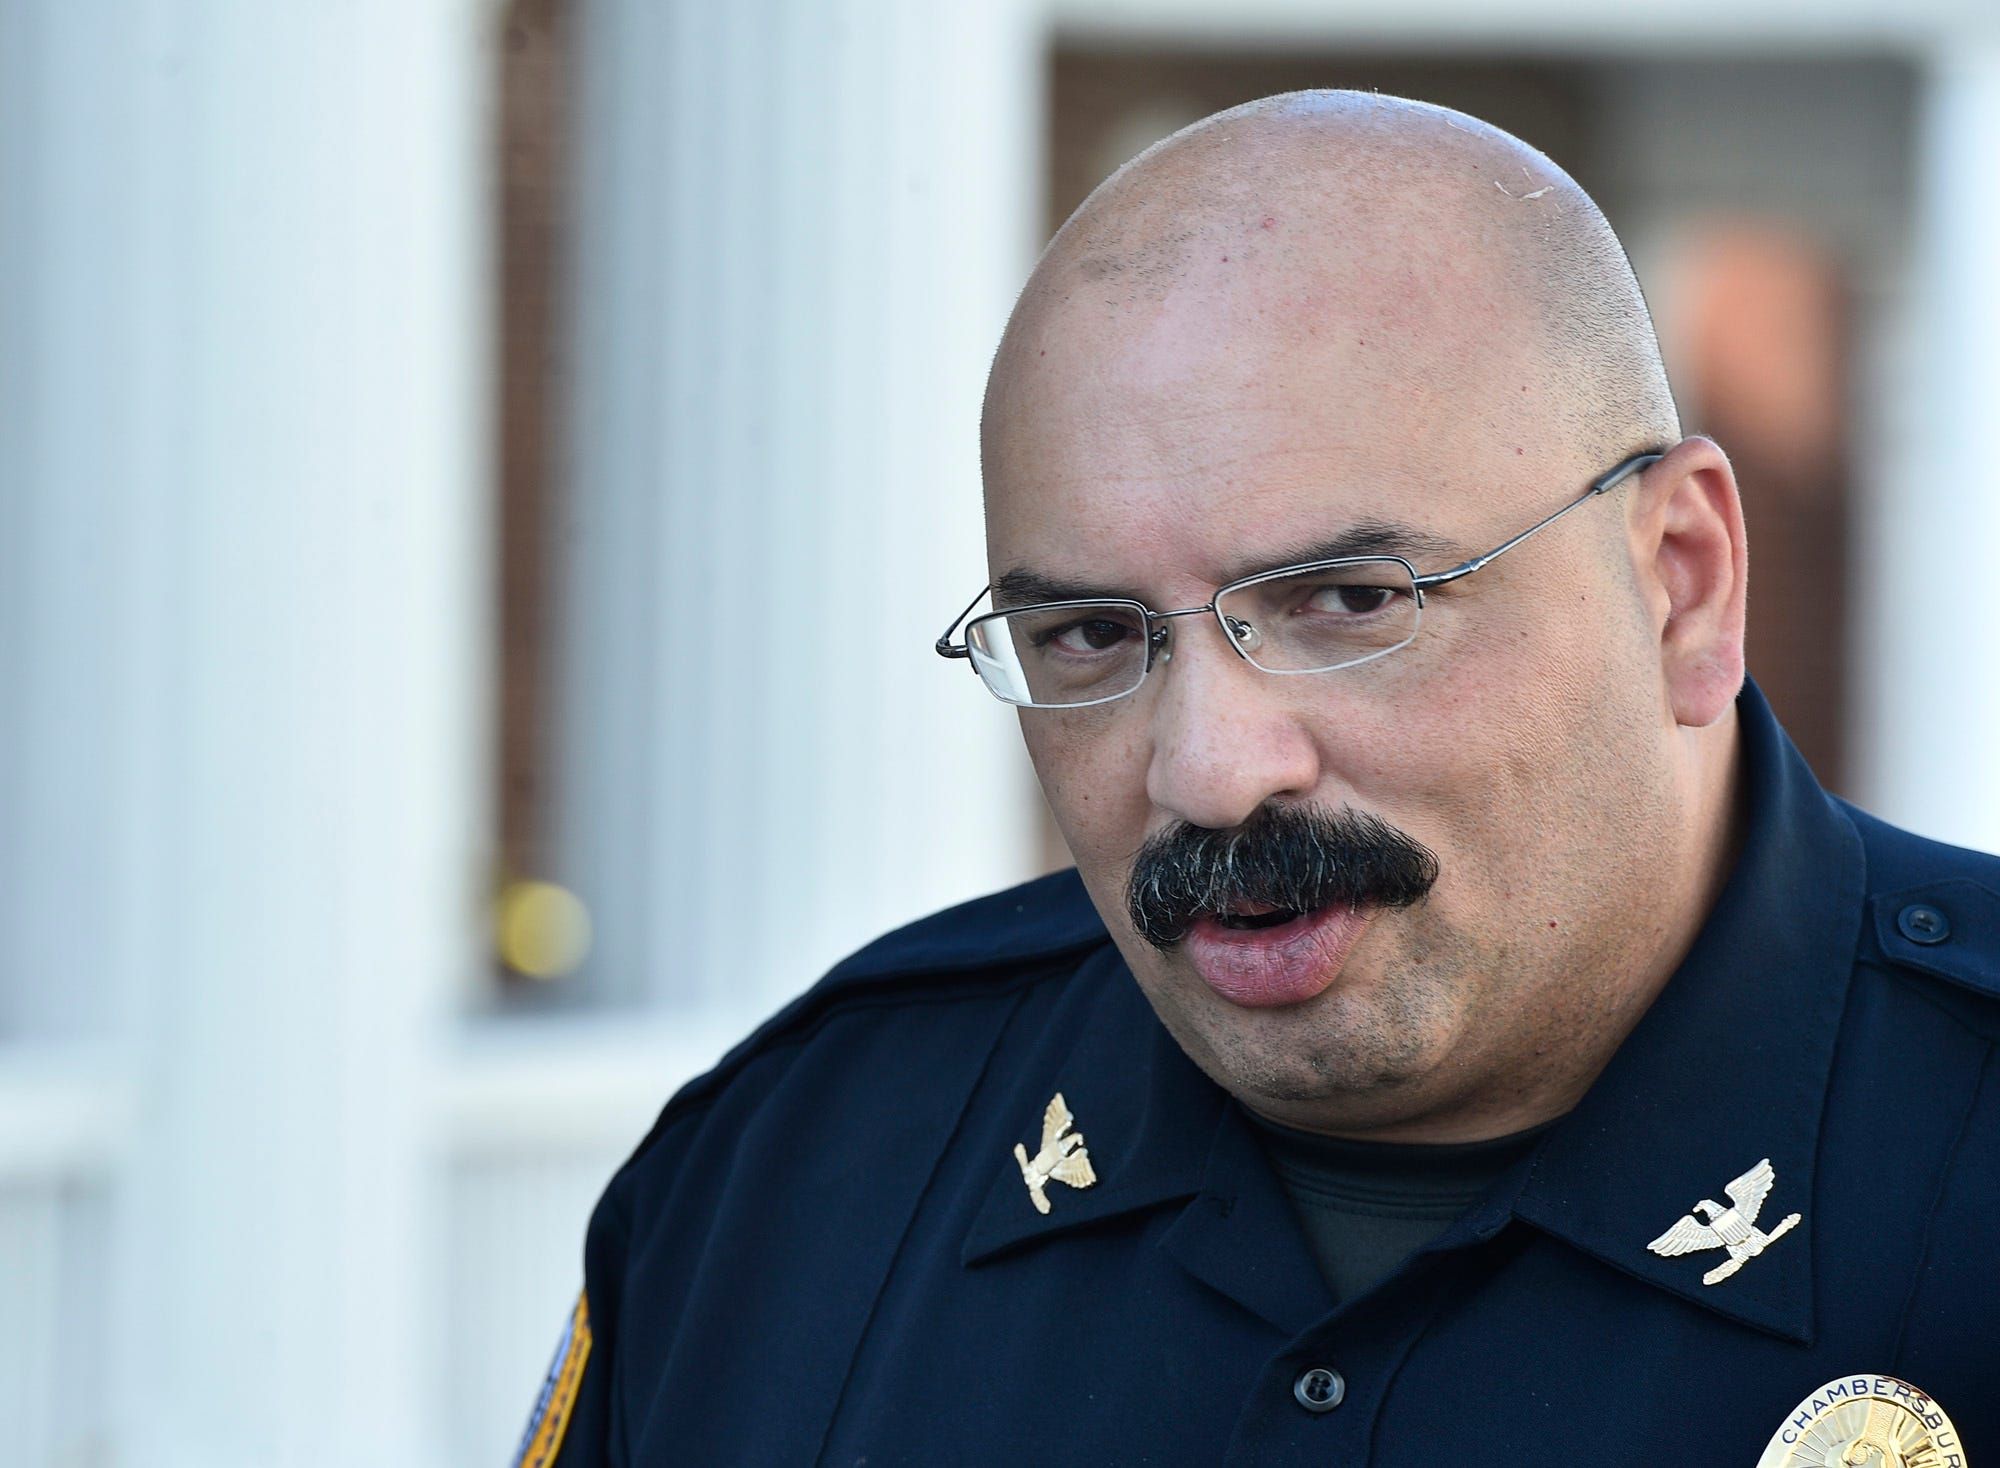 Chambersburg police Chief Ron Camacho, who is Hispanic, has made recruiting minority officers a priority.